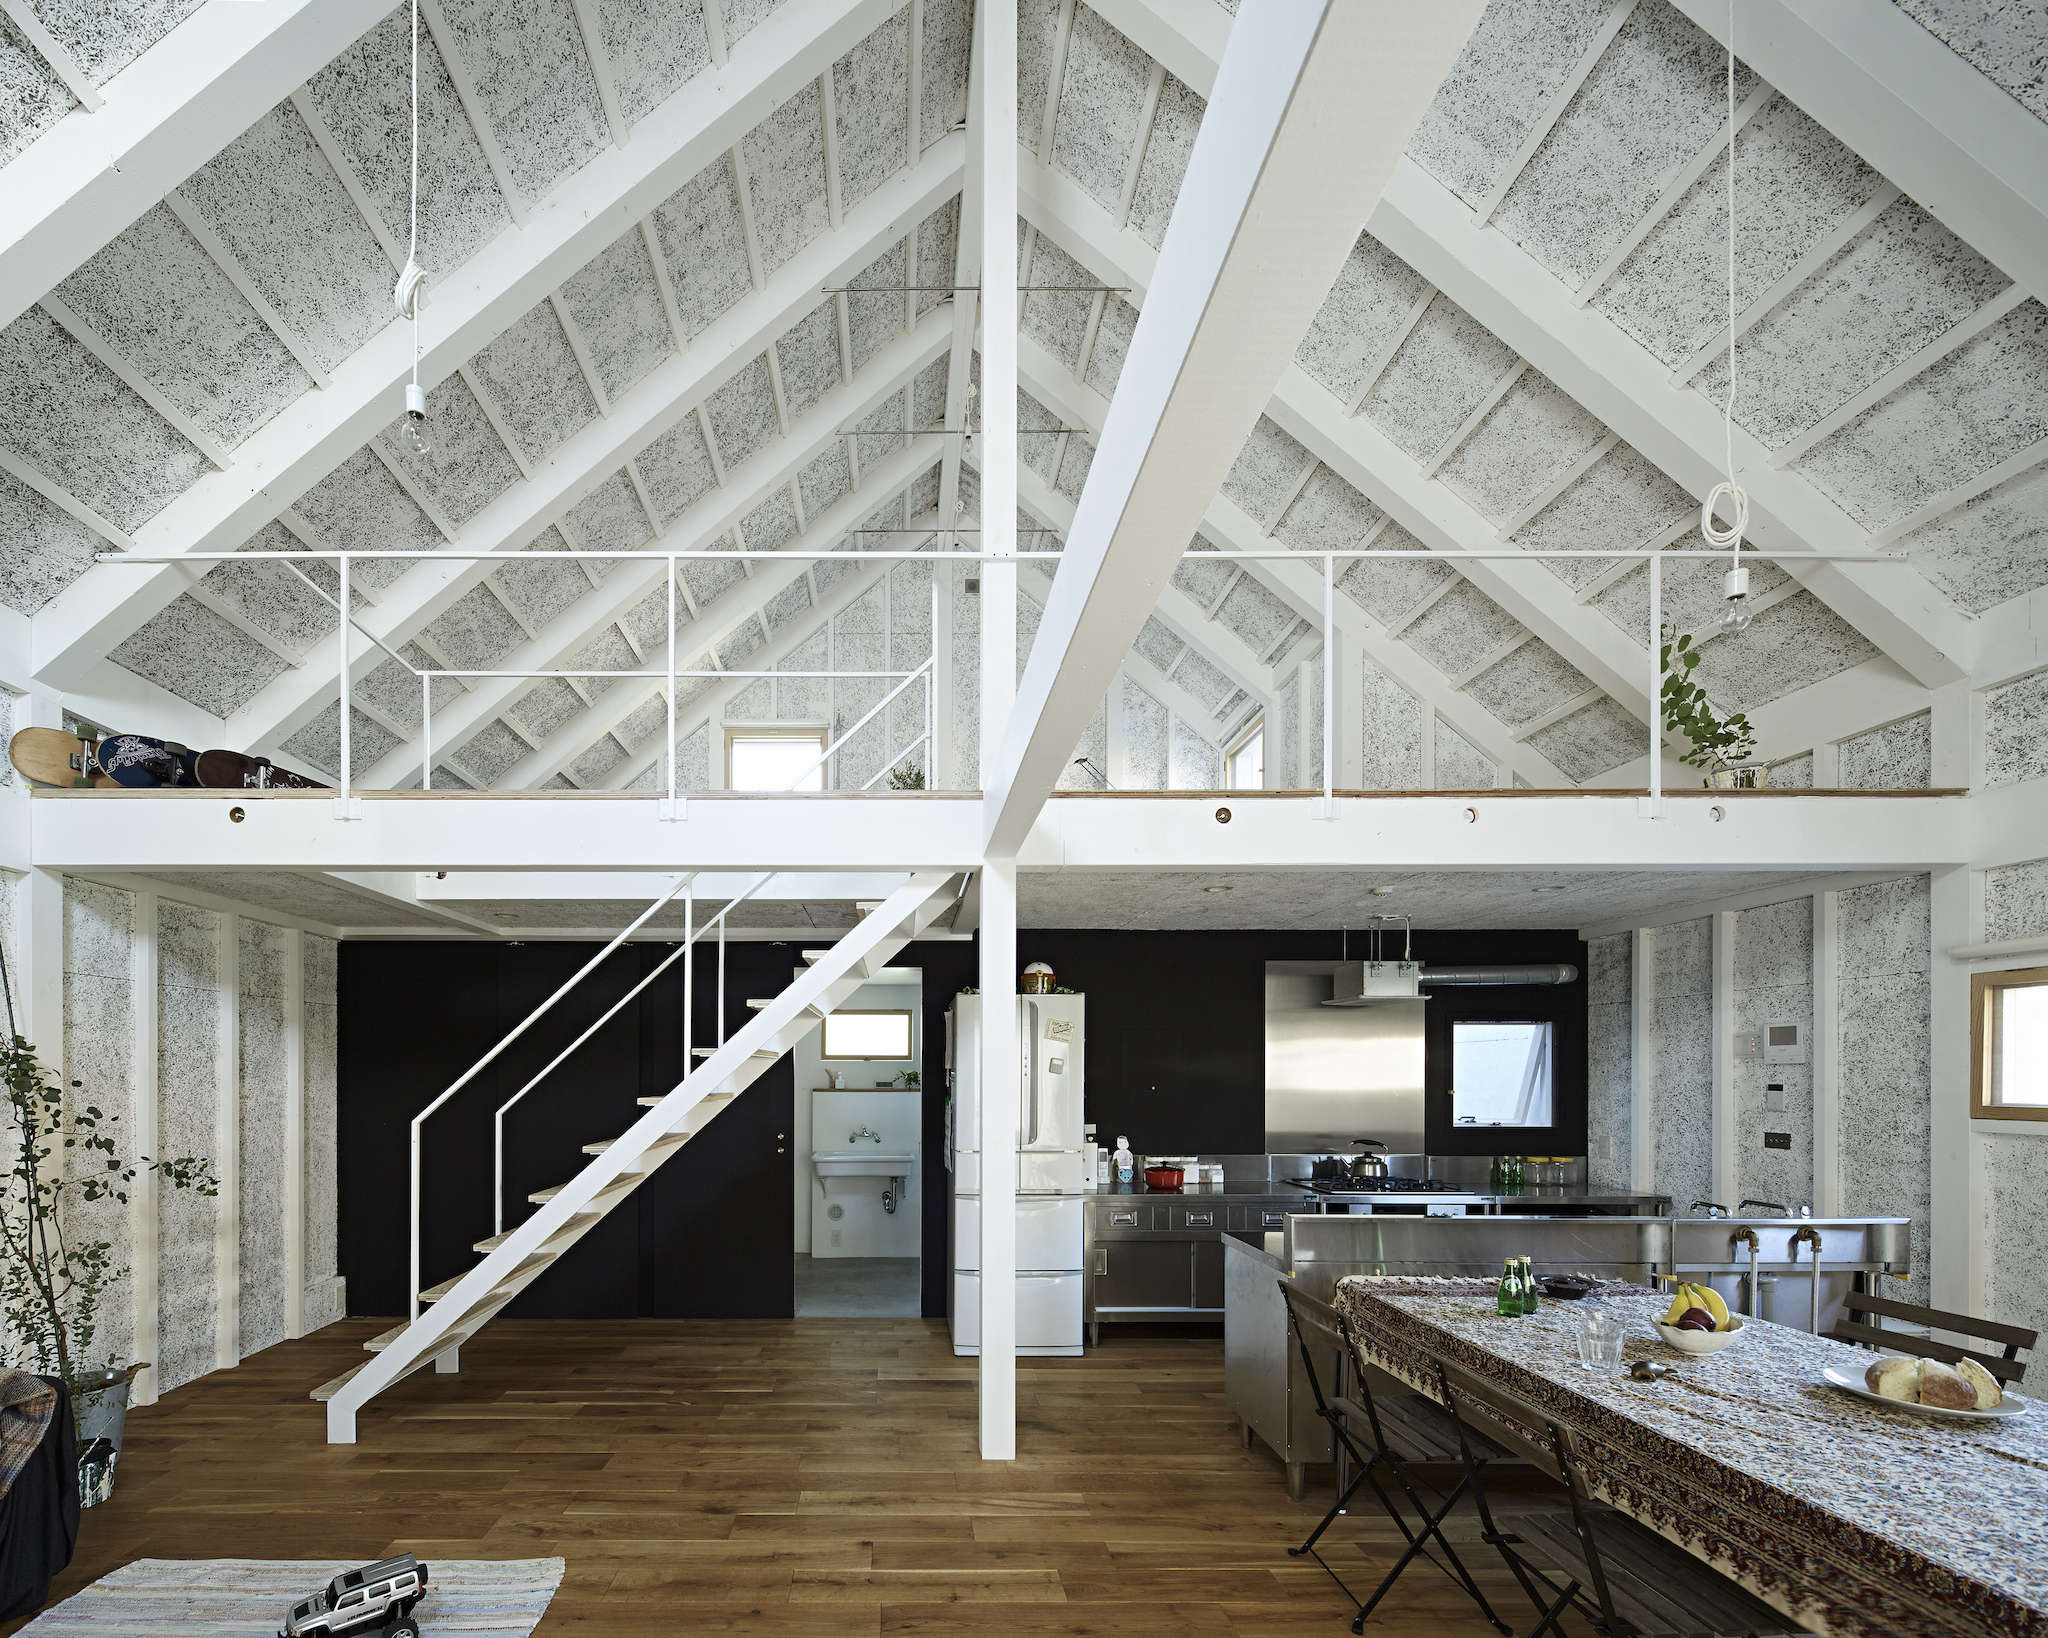 sabi, a surfers' house in chiba, japan, designed by no. 555 architects. the tex 10